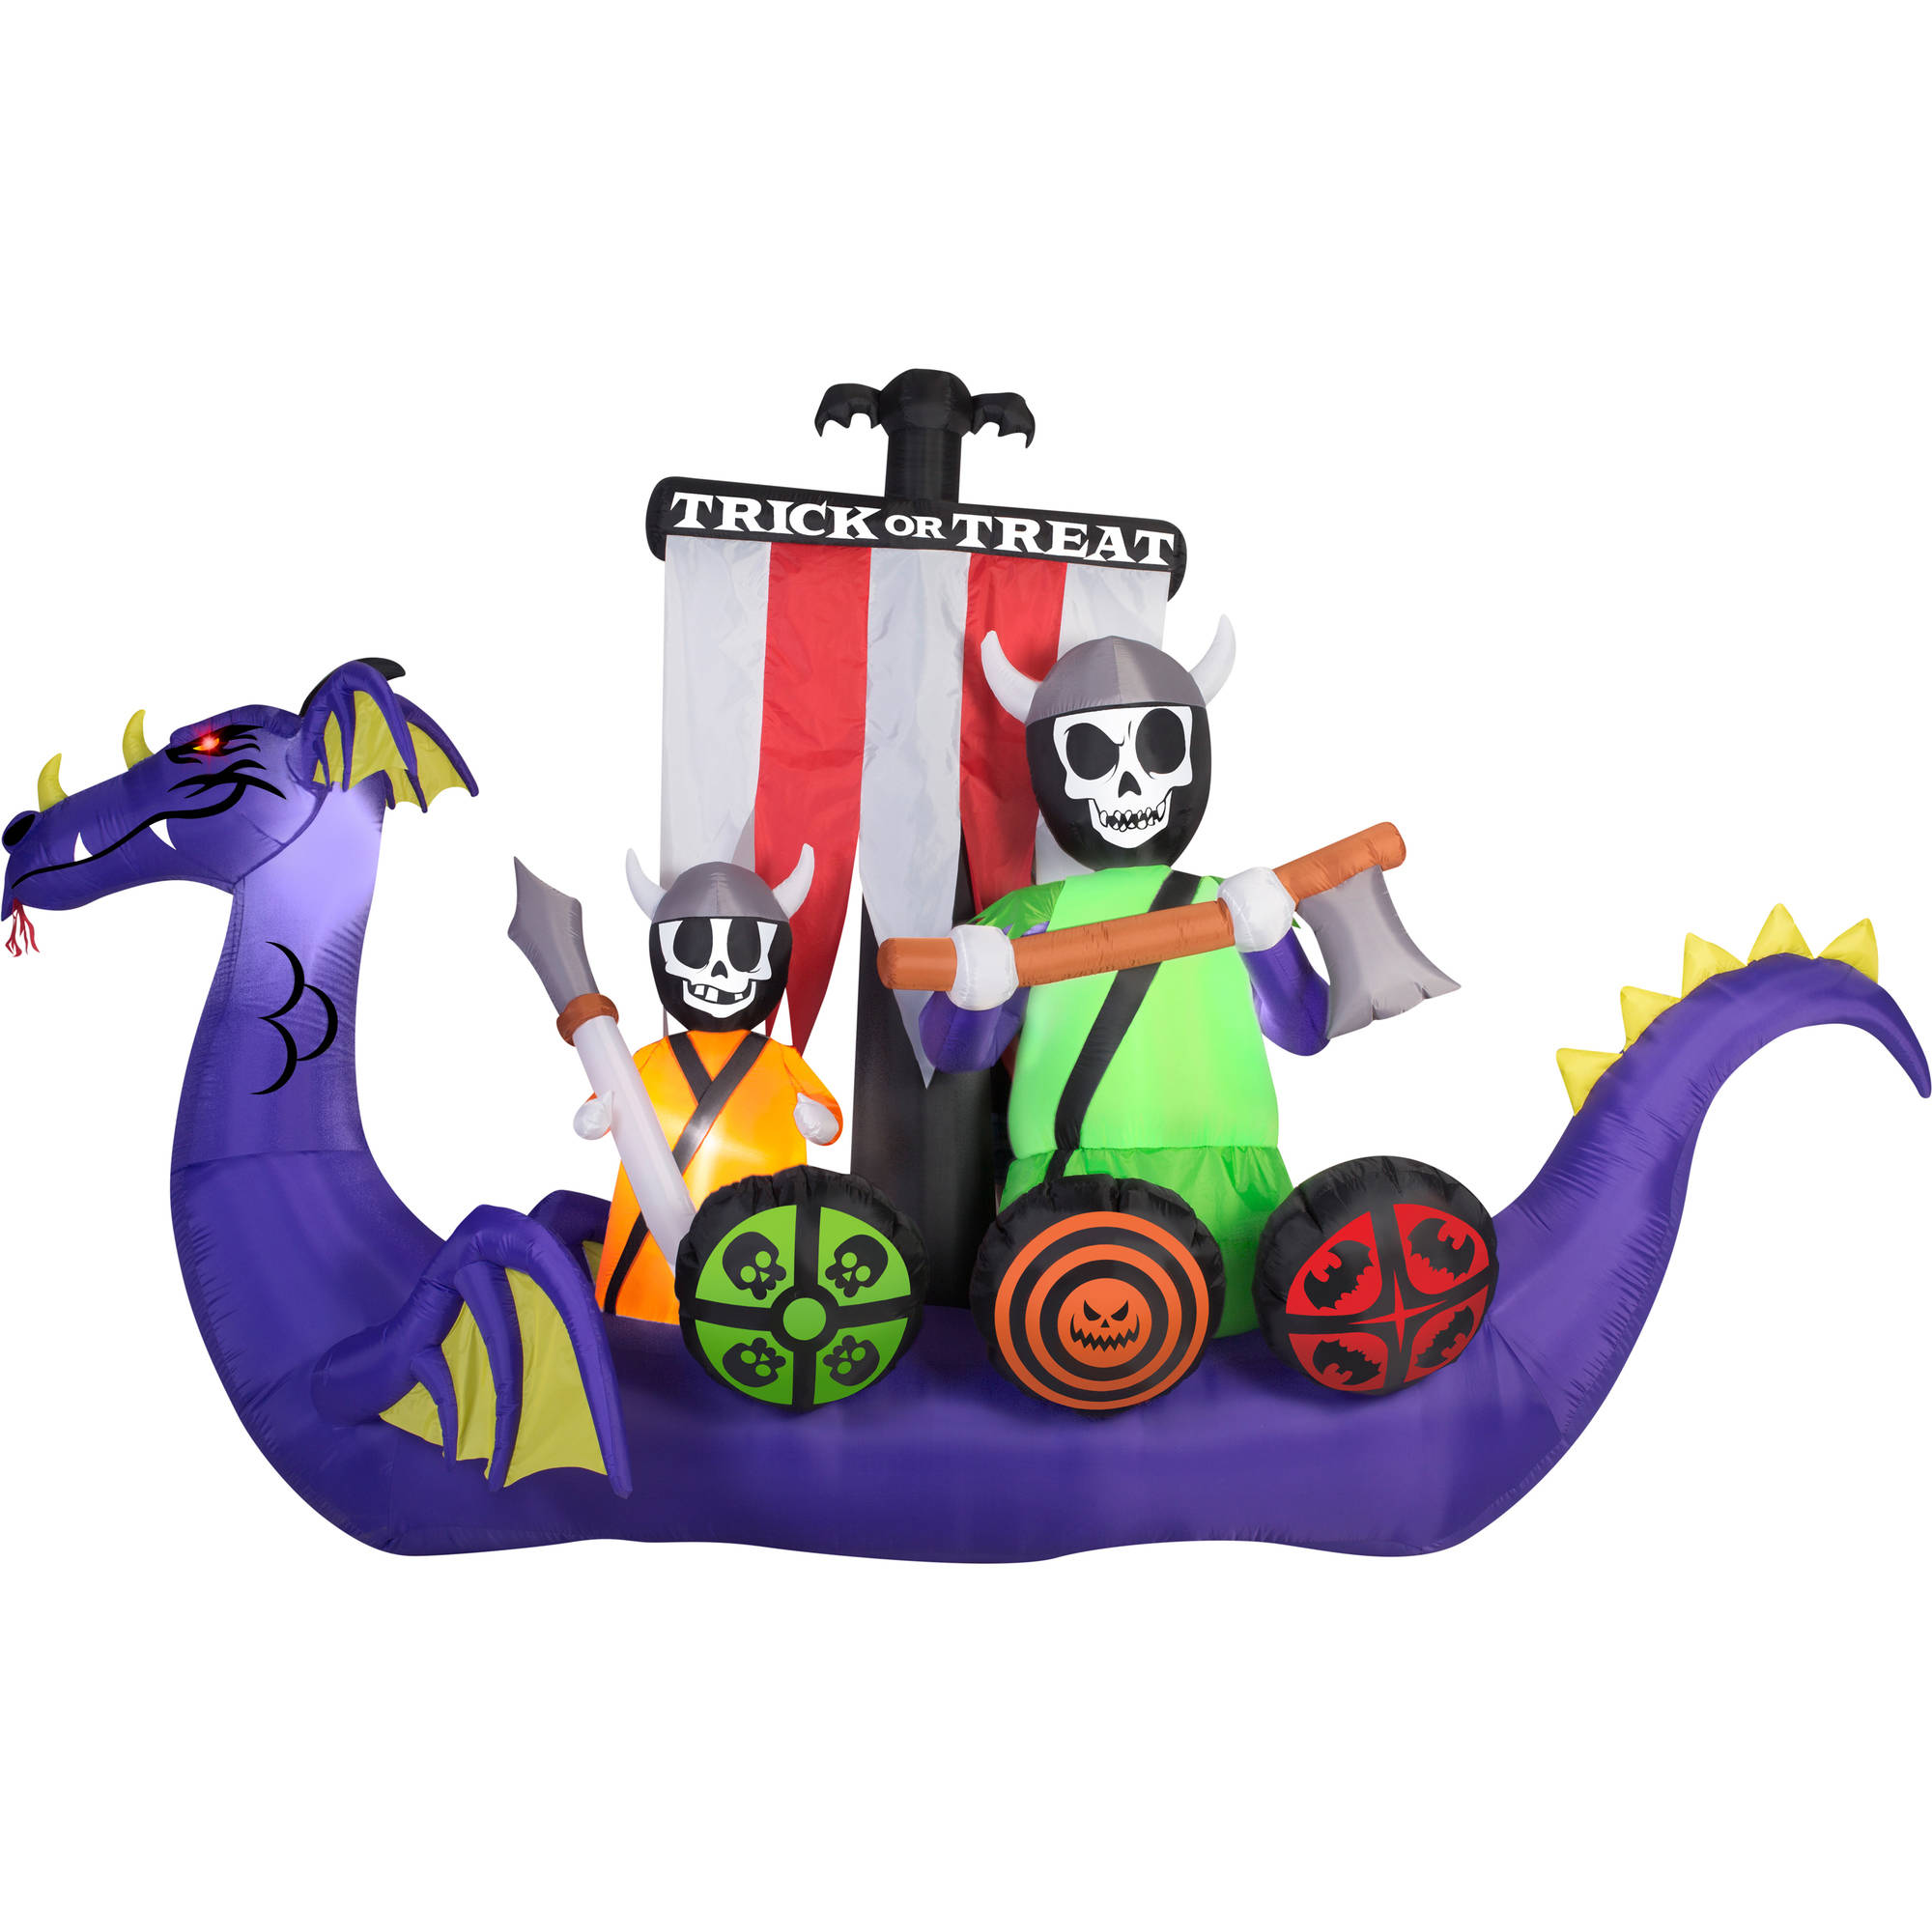 Gemmy Airblown Inflatable 7.5' X 12' Giant Animated Viking Ship Halloween Decoration